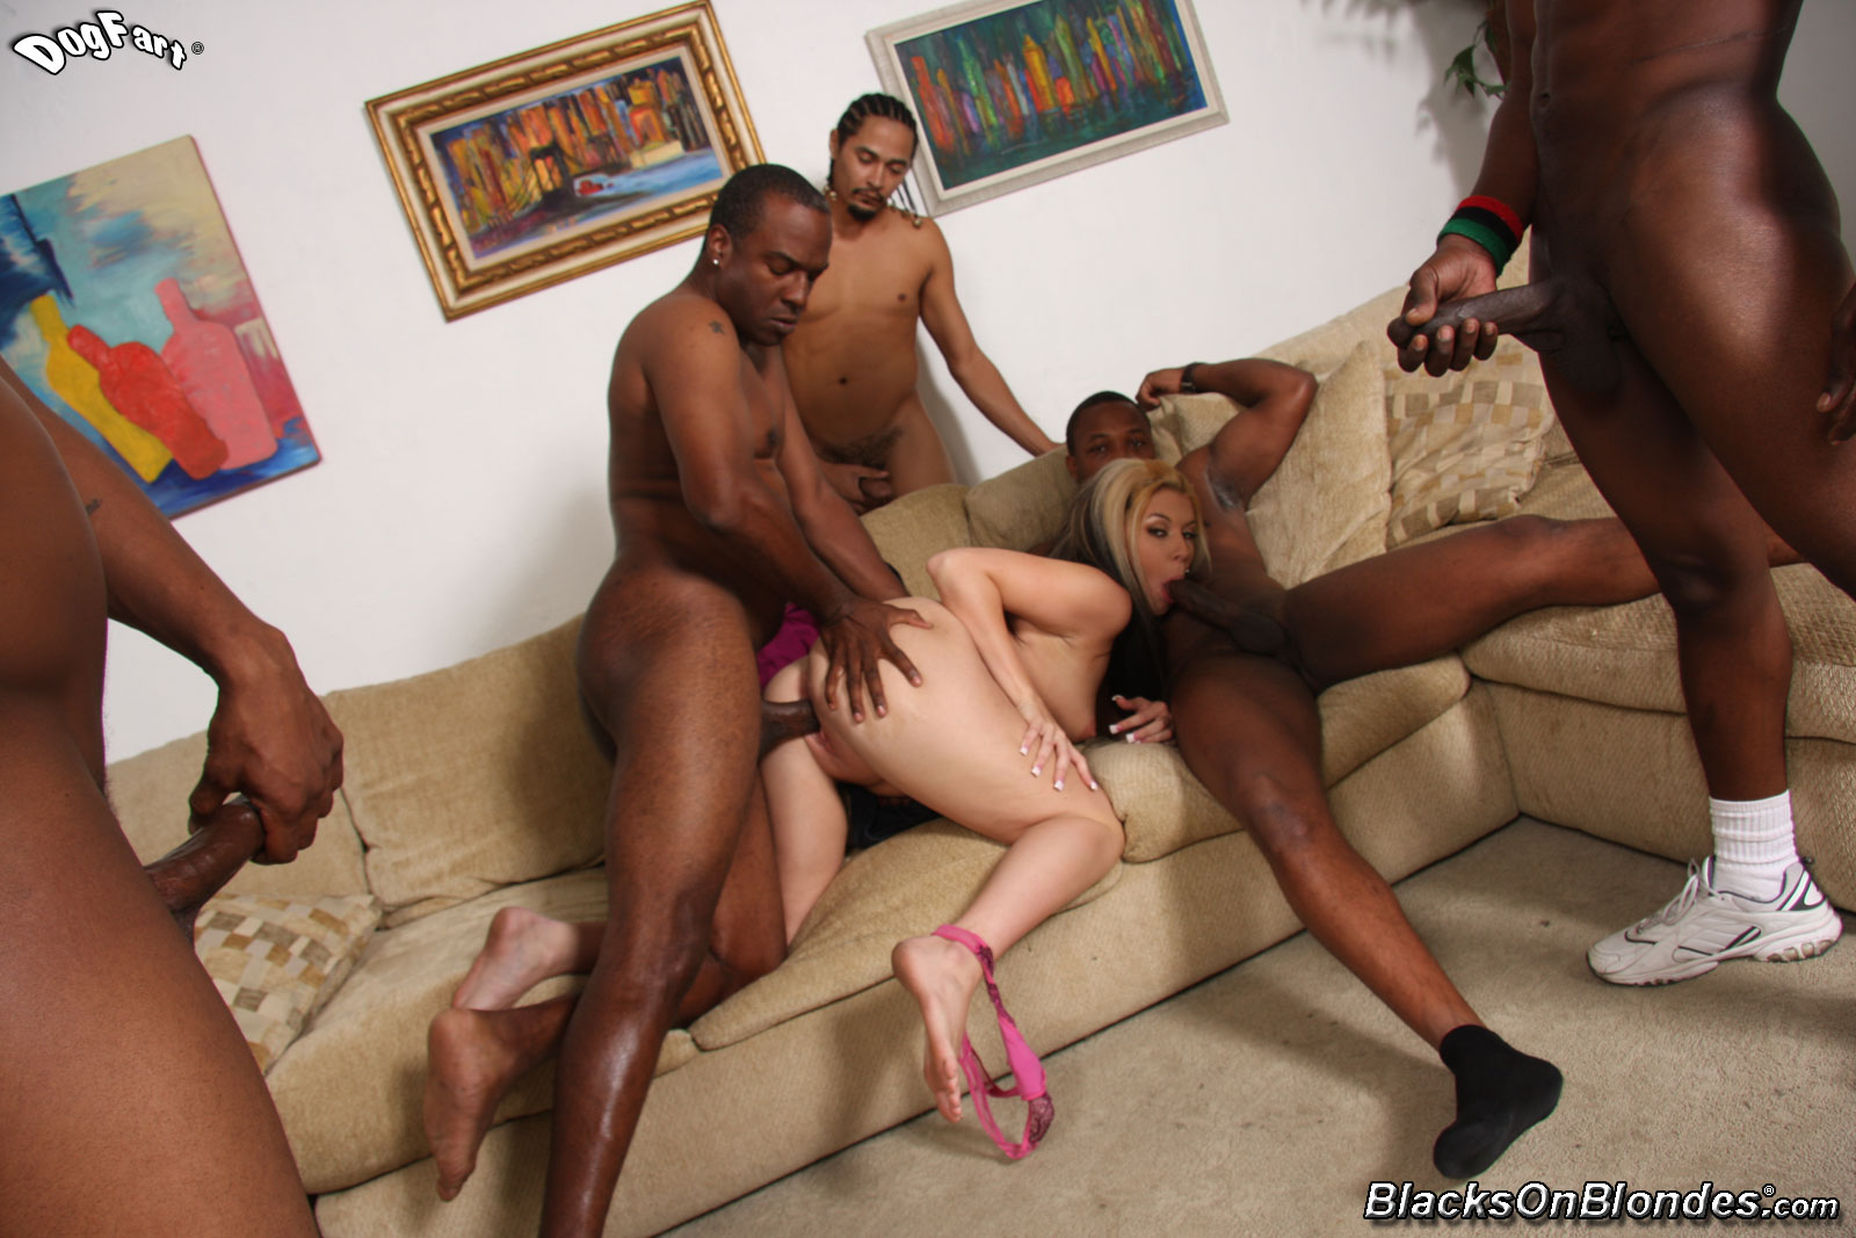 gang bang gay video